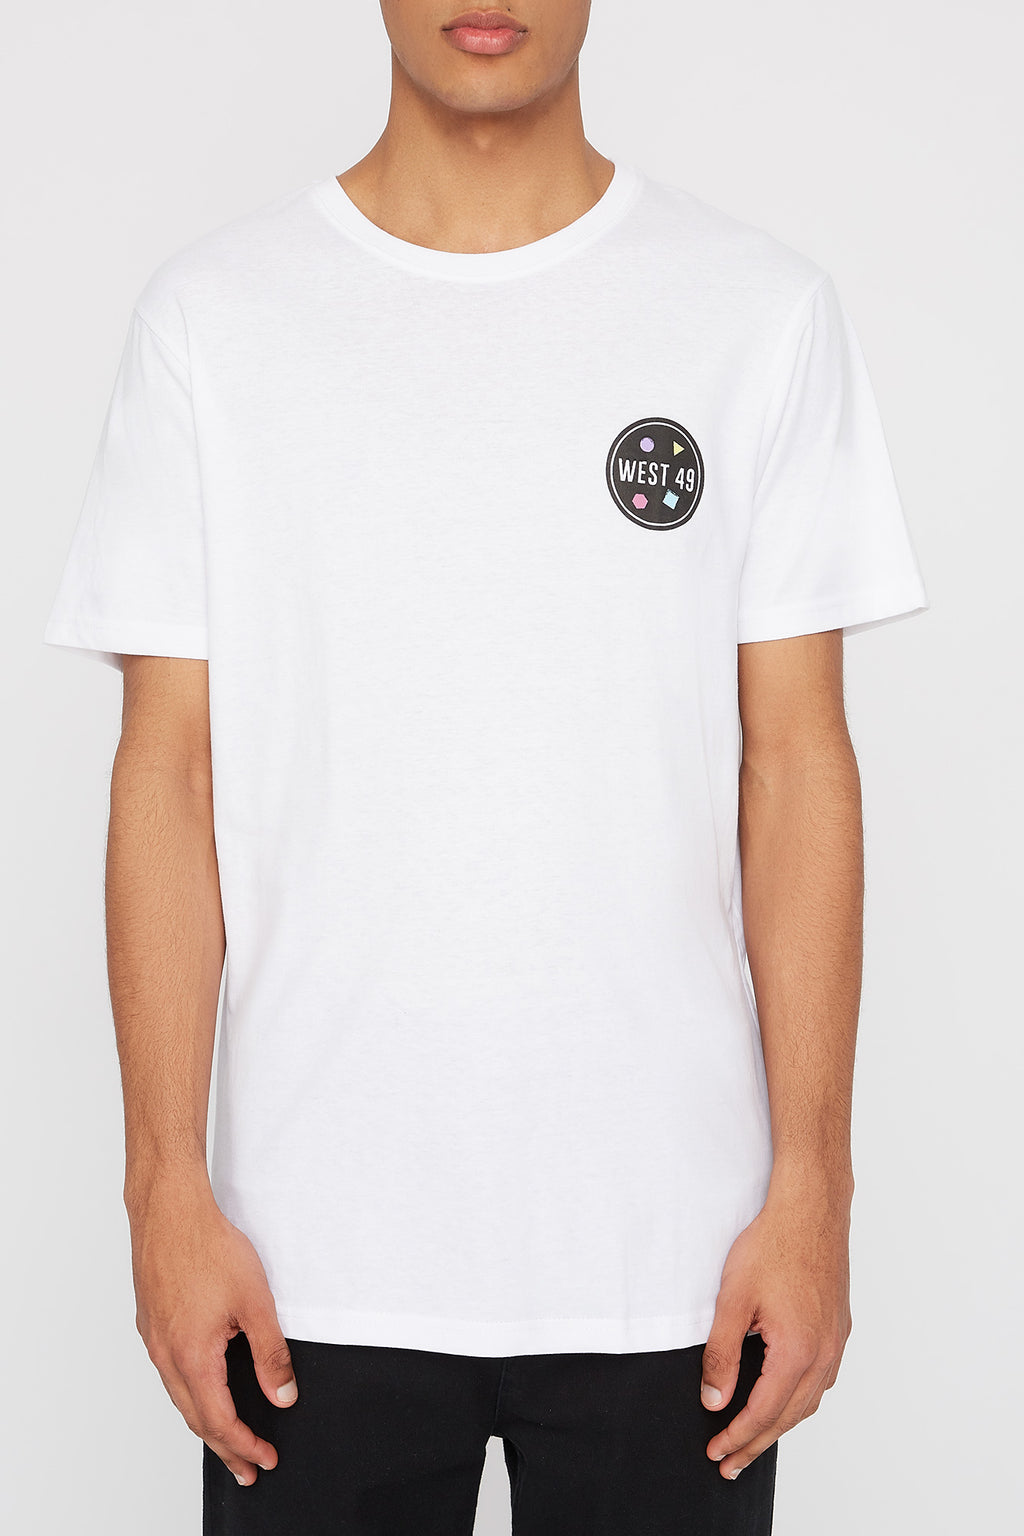 West49 Mens Circle Logo T-Shirt